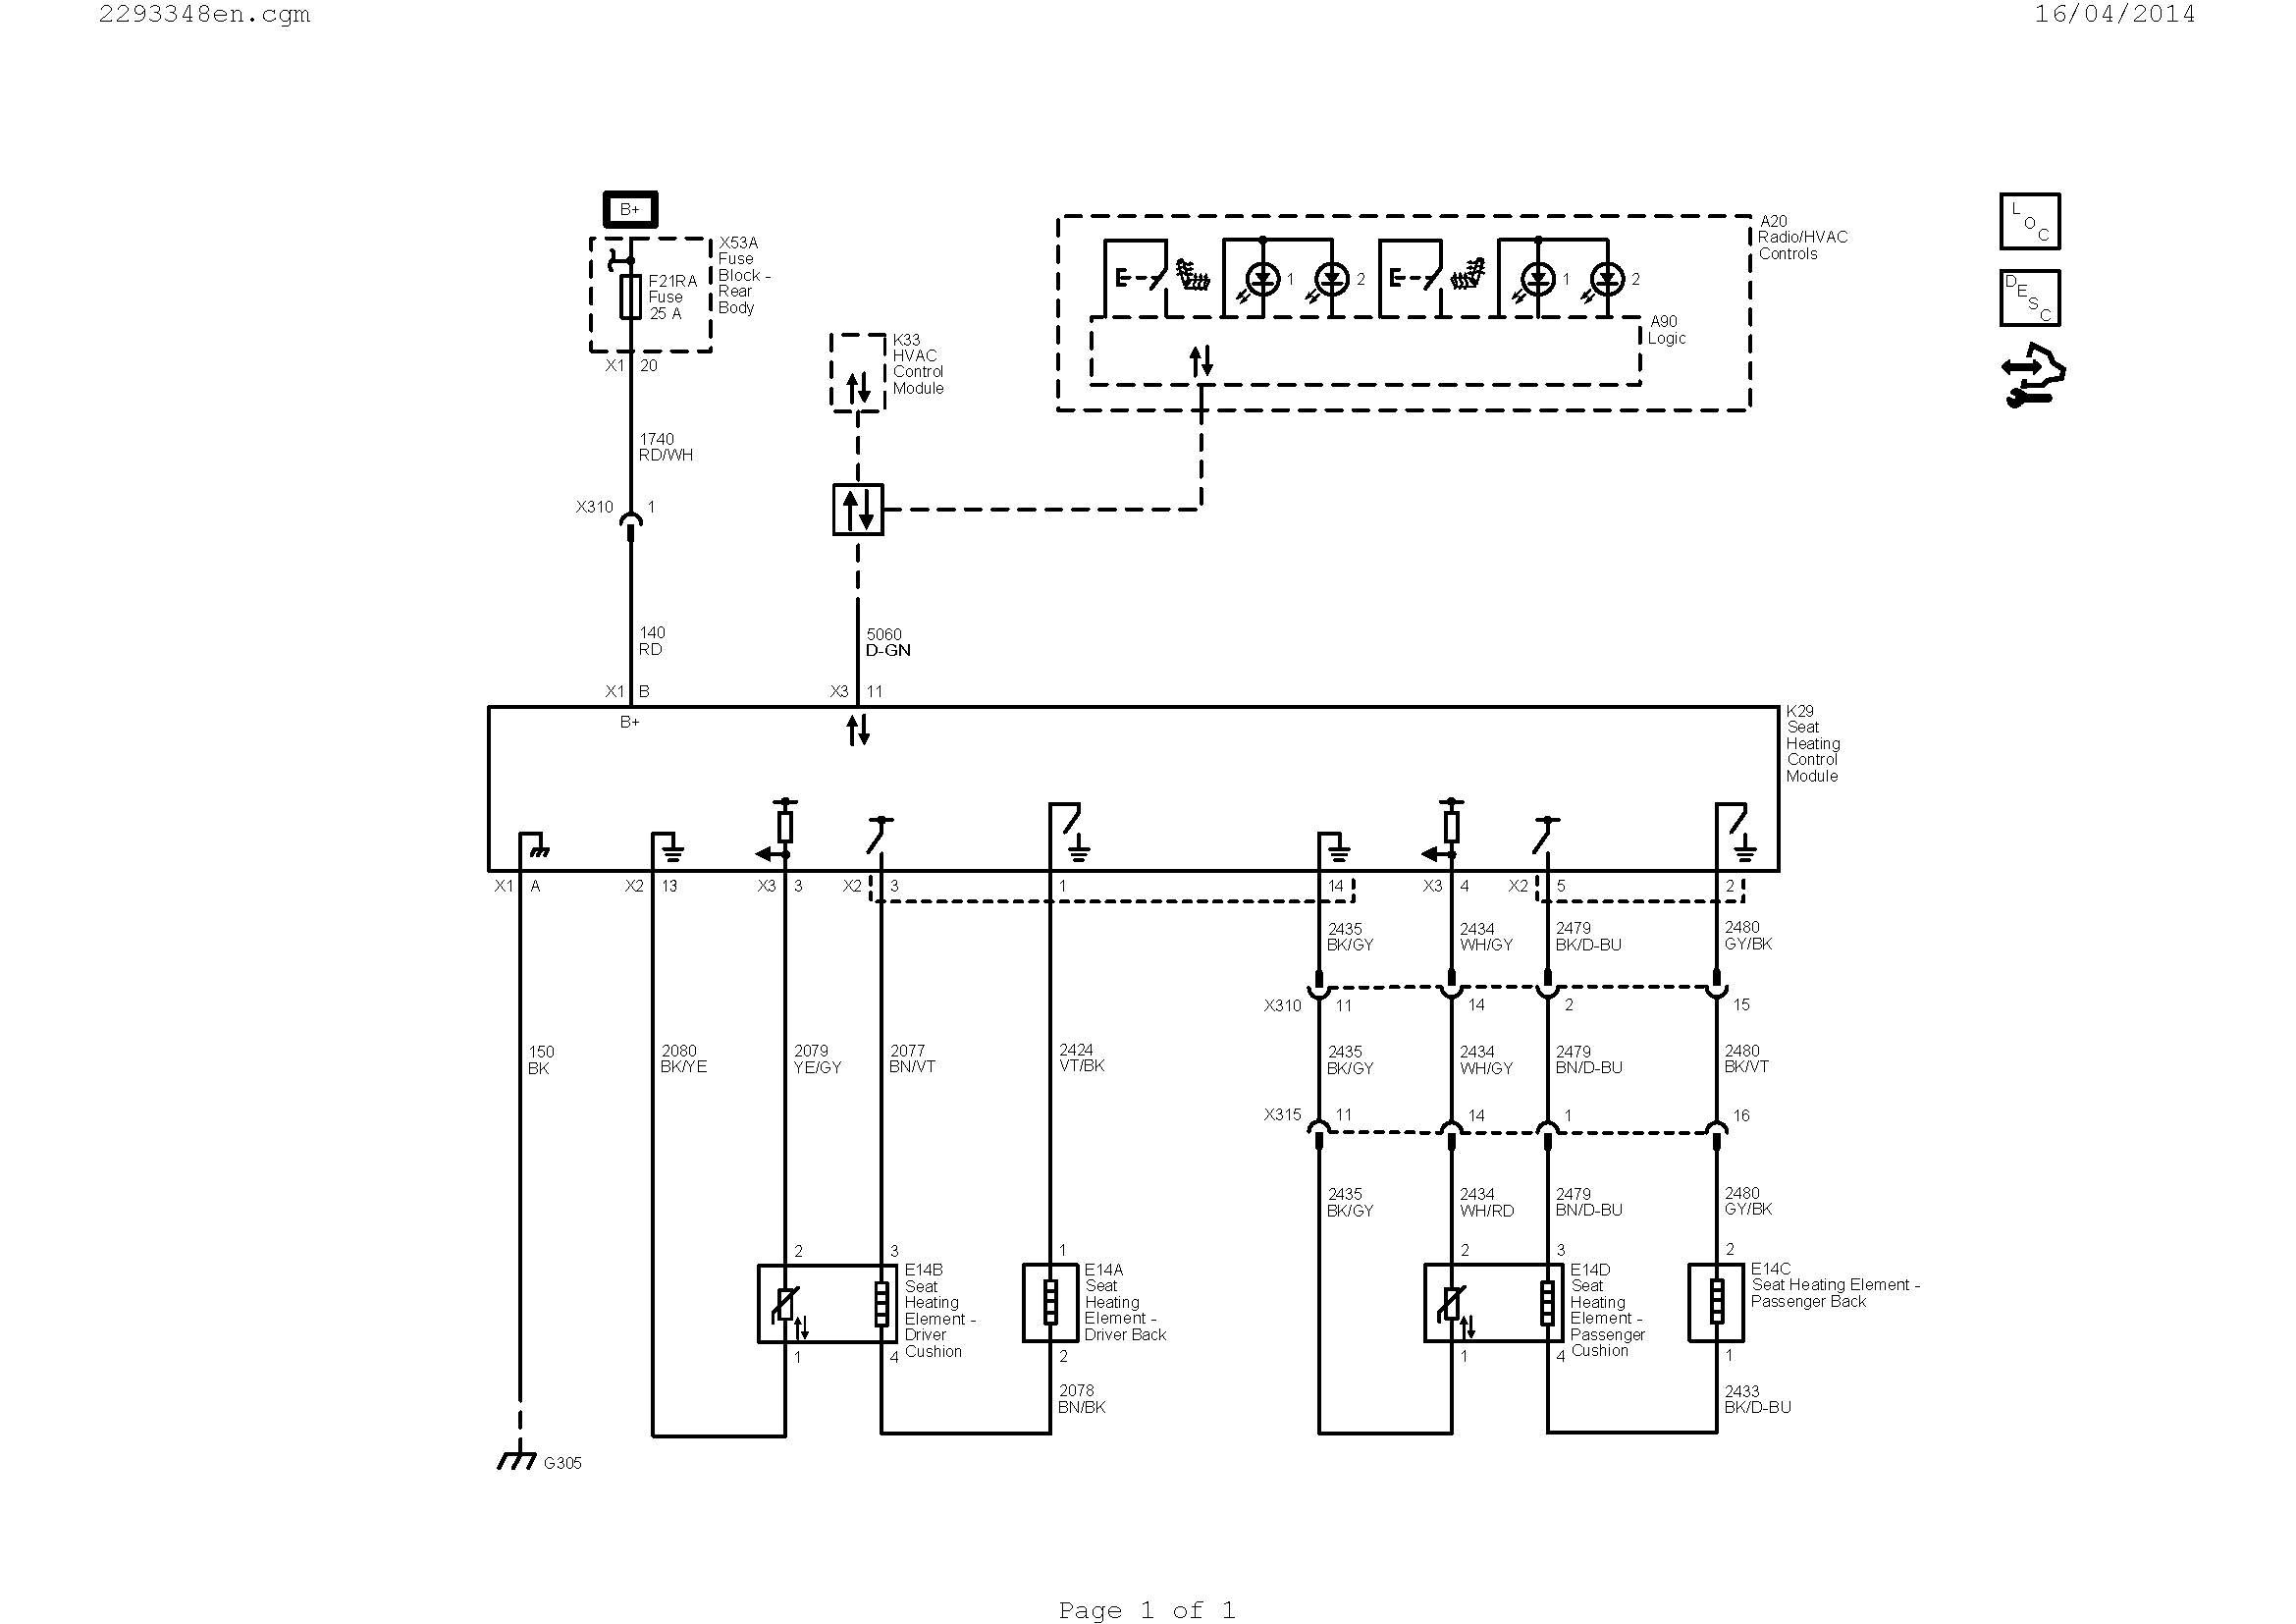 fbp 1 40x wiring diagram Download-Wiring Diagram for Work Light Best Fbp 1 40x Wiring Diagram Pics 18-l